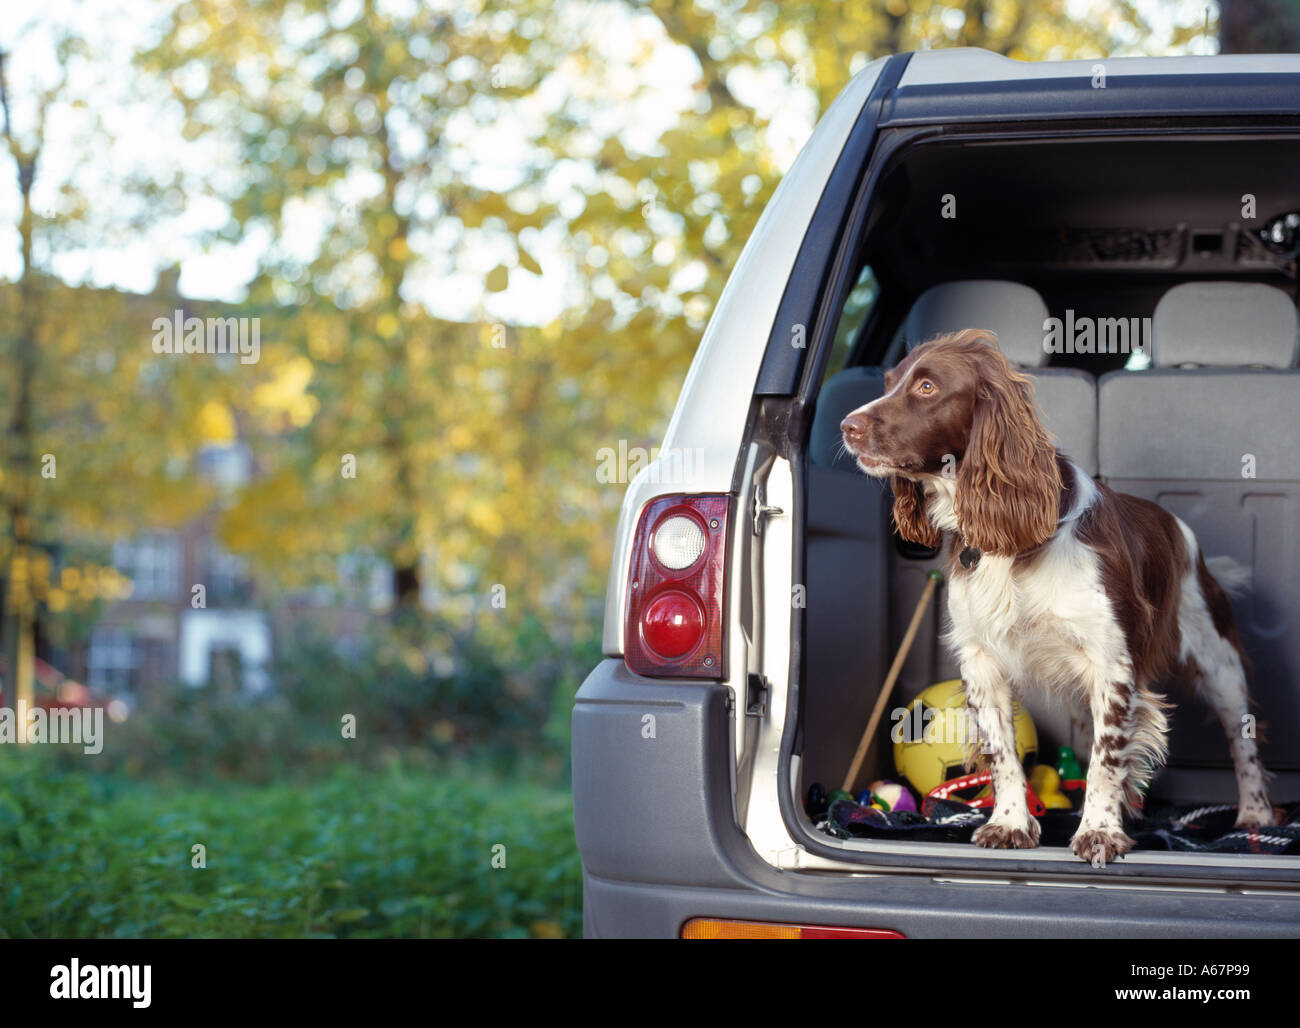 springer spaniel waiting in car boot - Stock Image